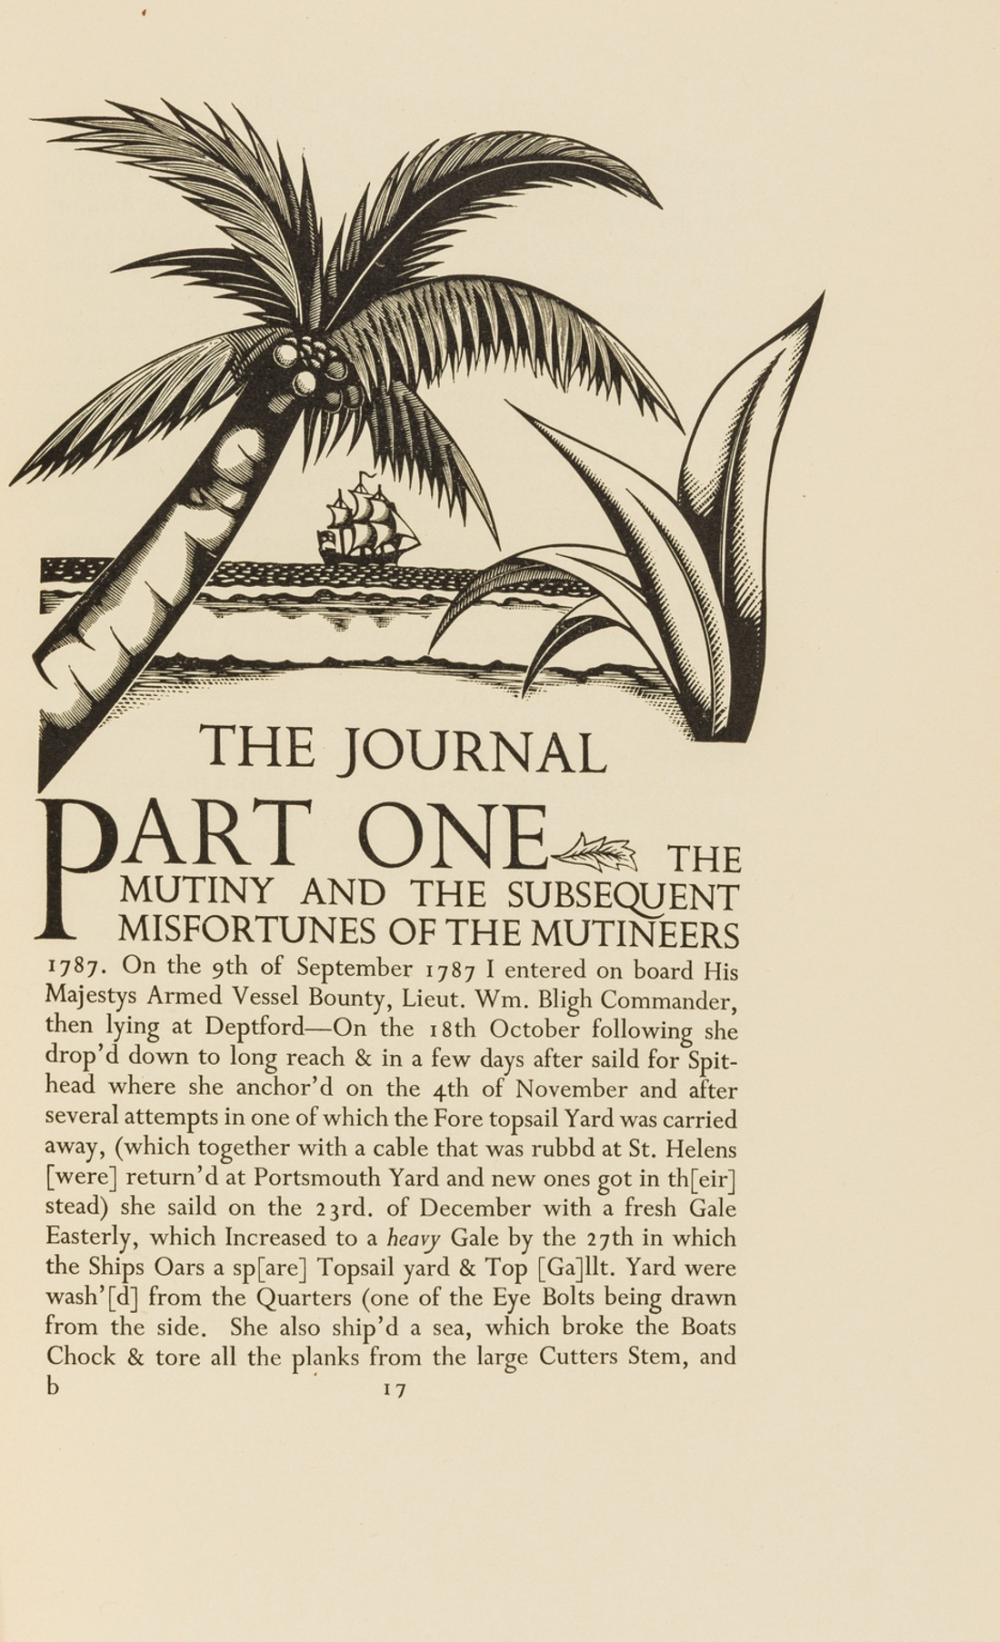 Golden Cockerel Press.- Morrison (James) The Journal...Boatswain's Mate of The Bounty, one of 325 copies, wood-engravings by Gibbings, 1935 & 2 others, similar, from the press (3)